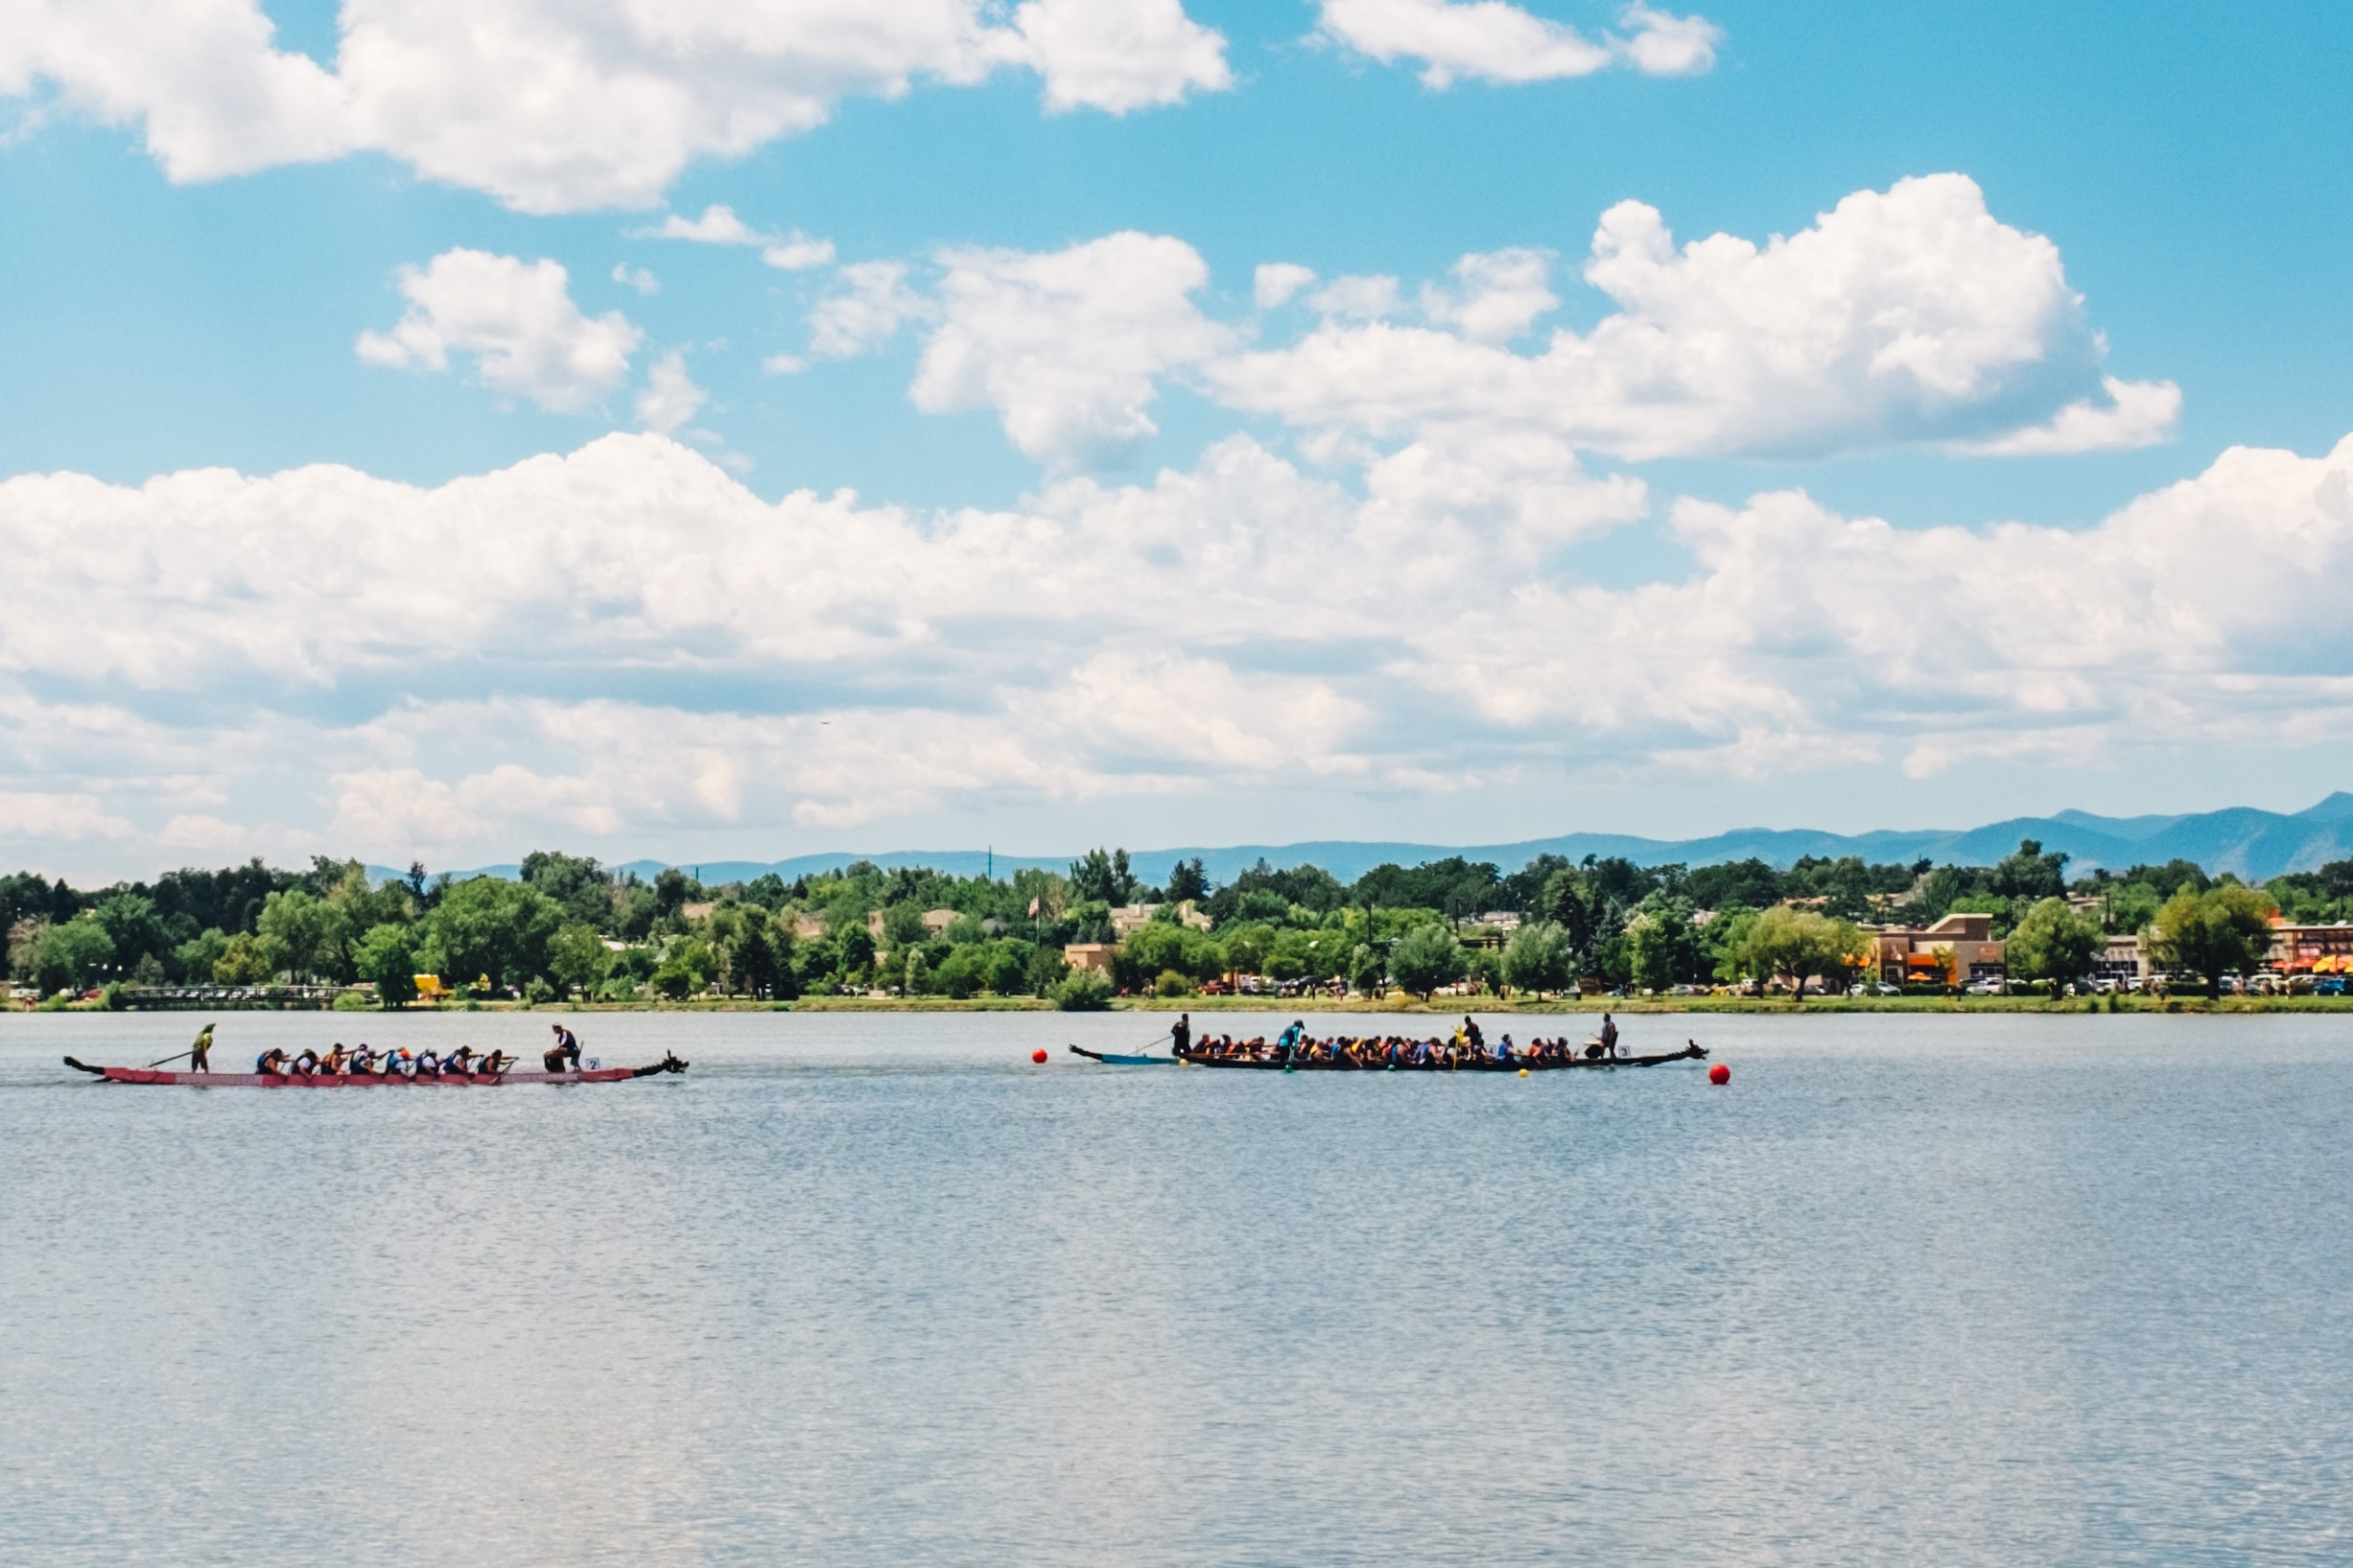 Boats racing at the Colorado Dragon Boat Festival